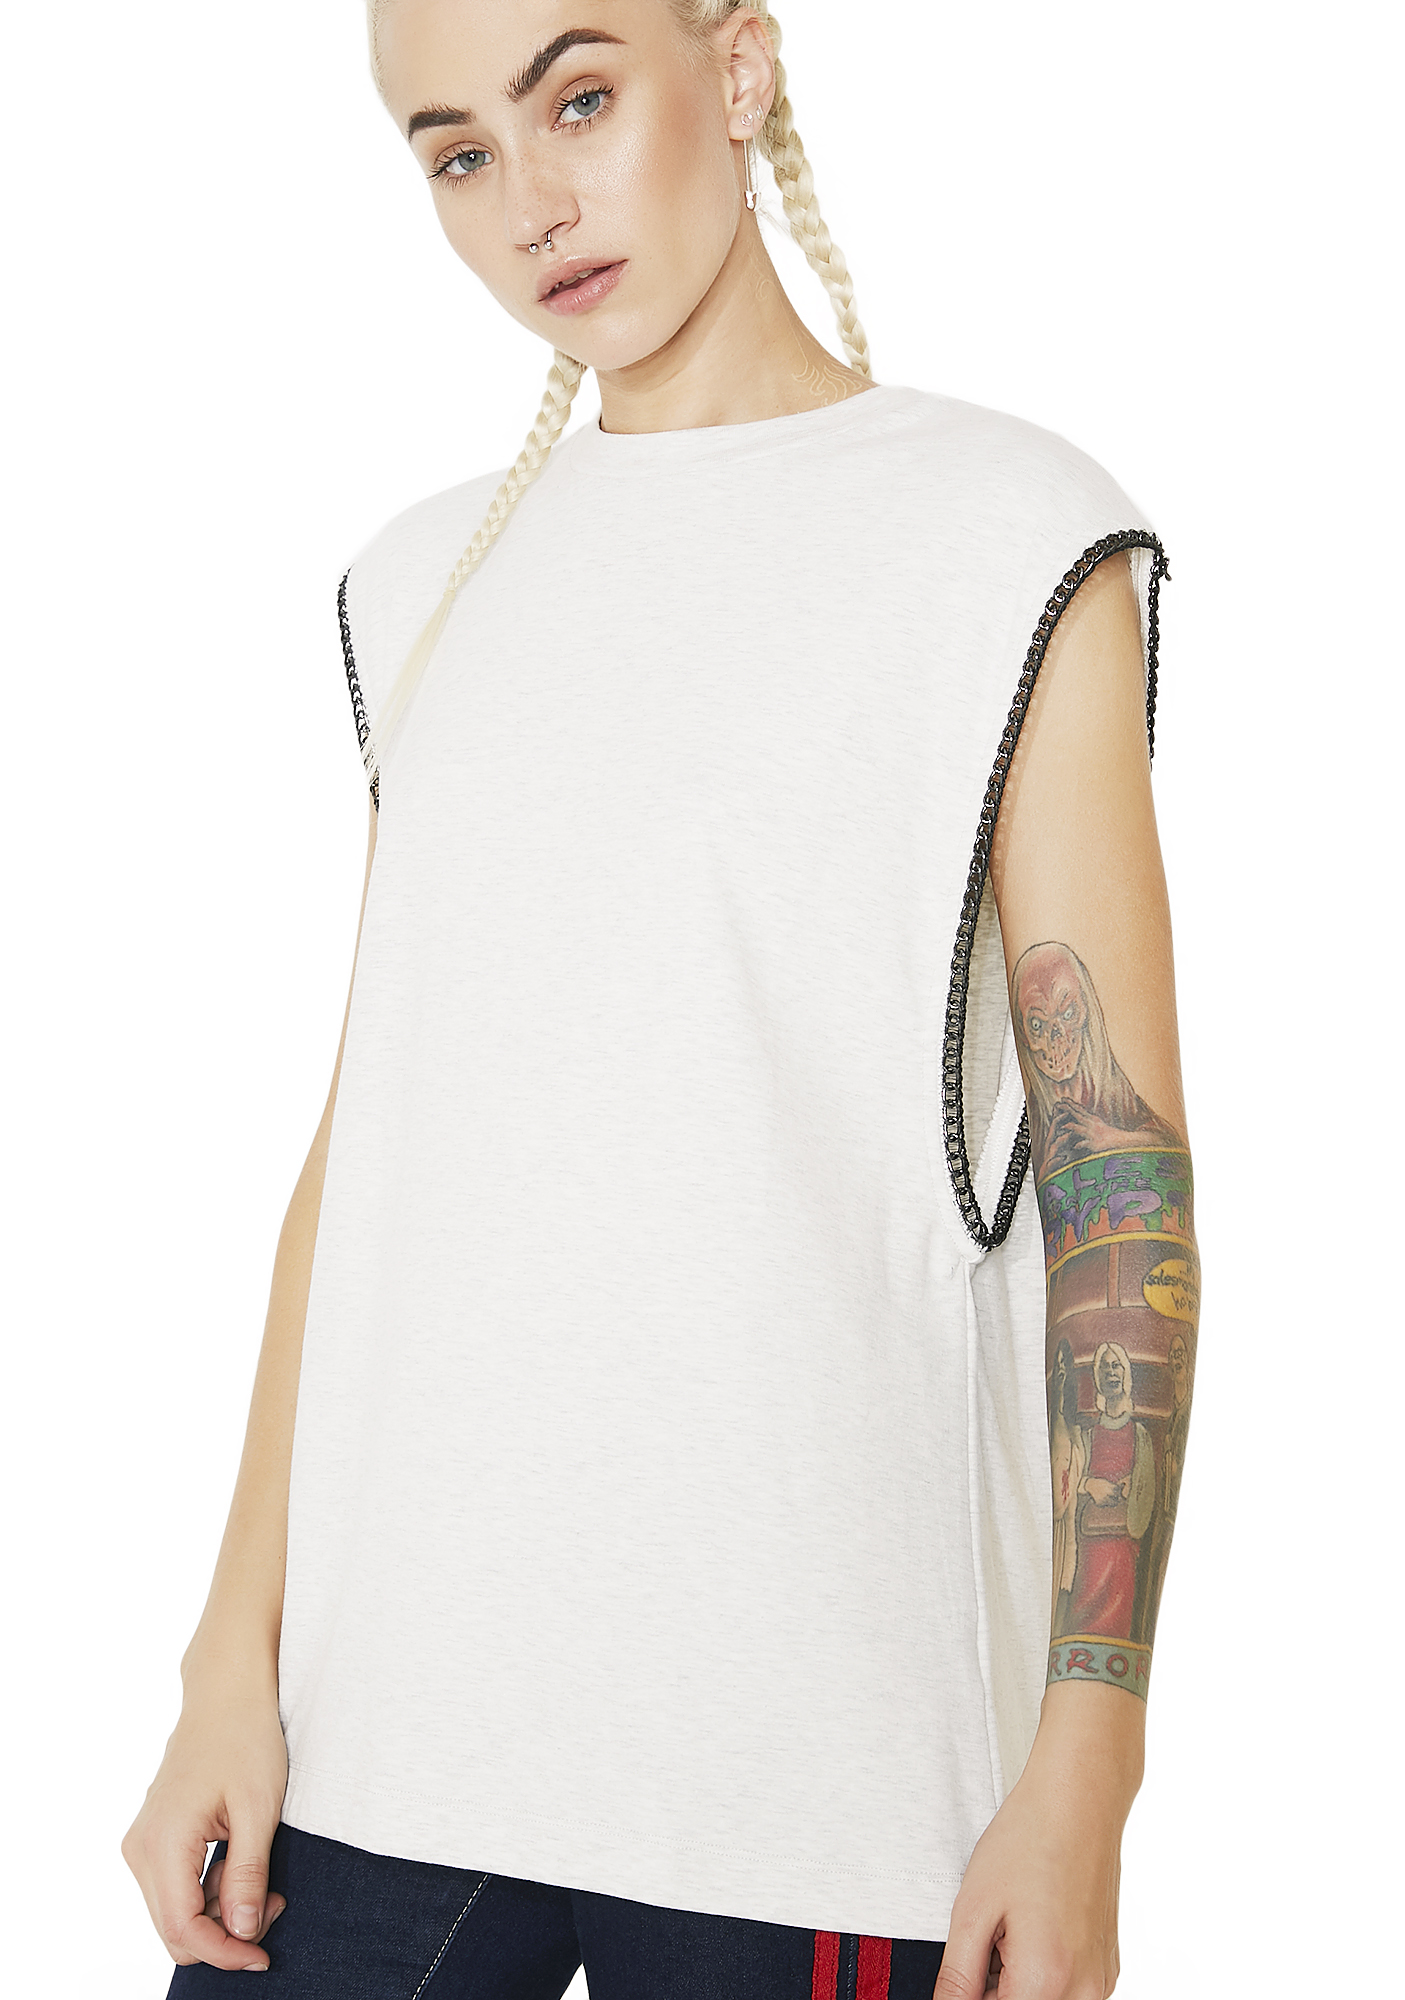 Chain Off White Muscle Tank